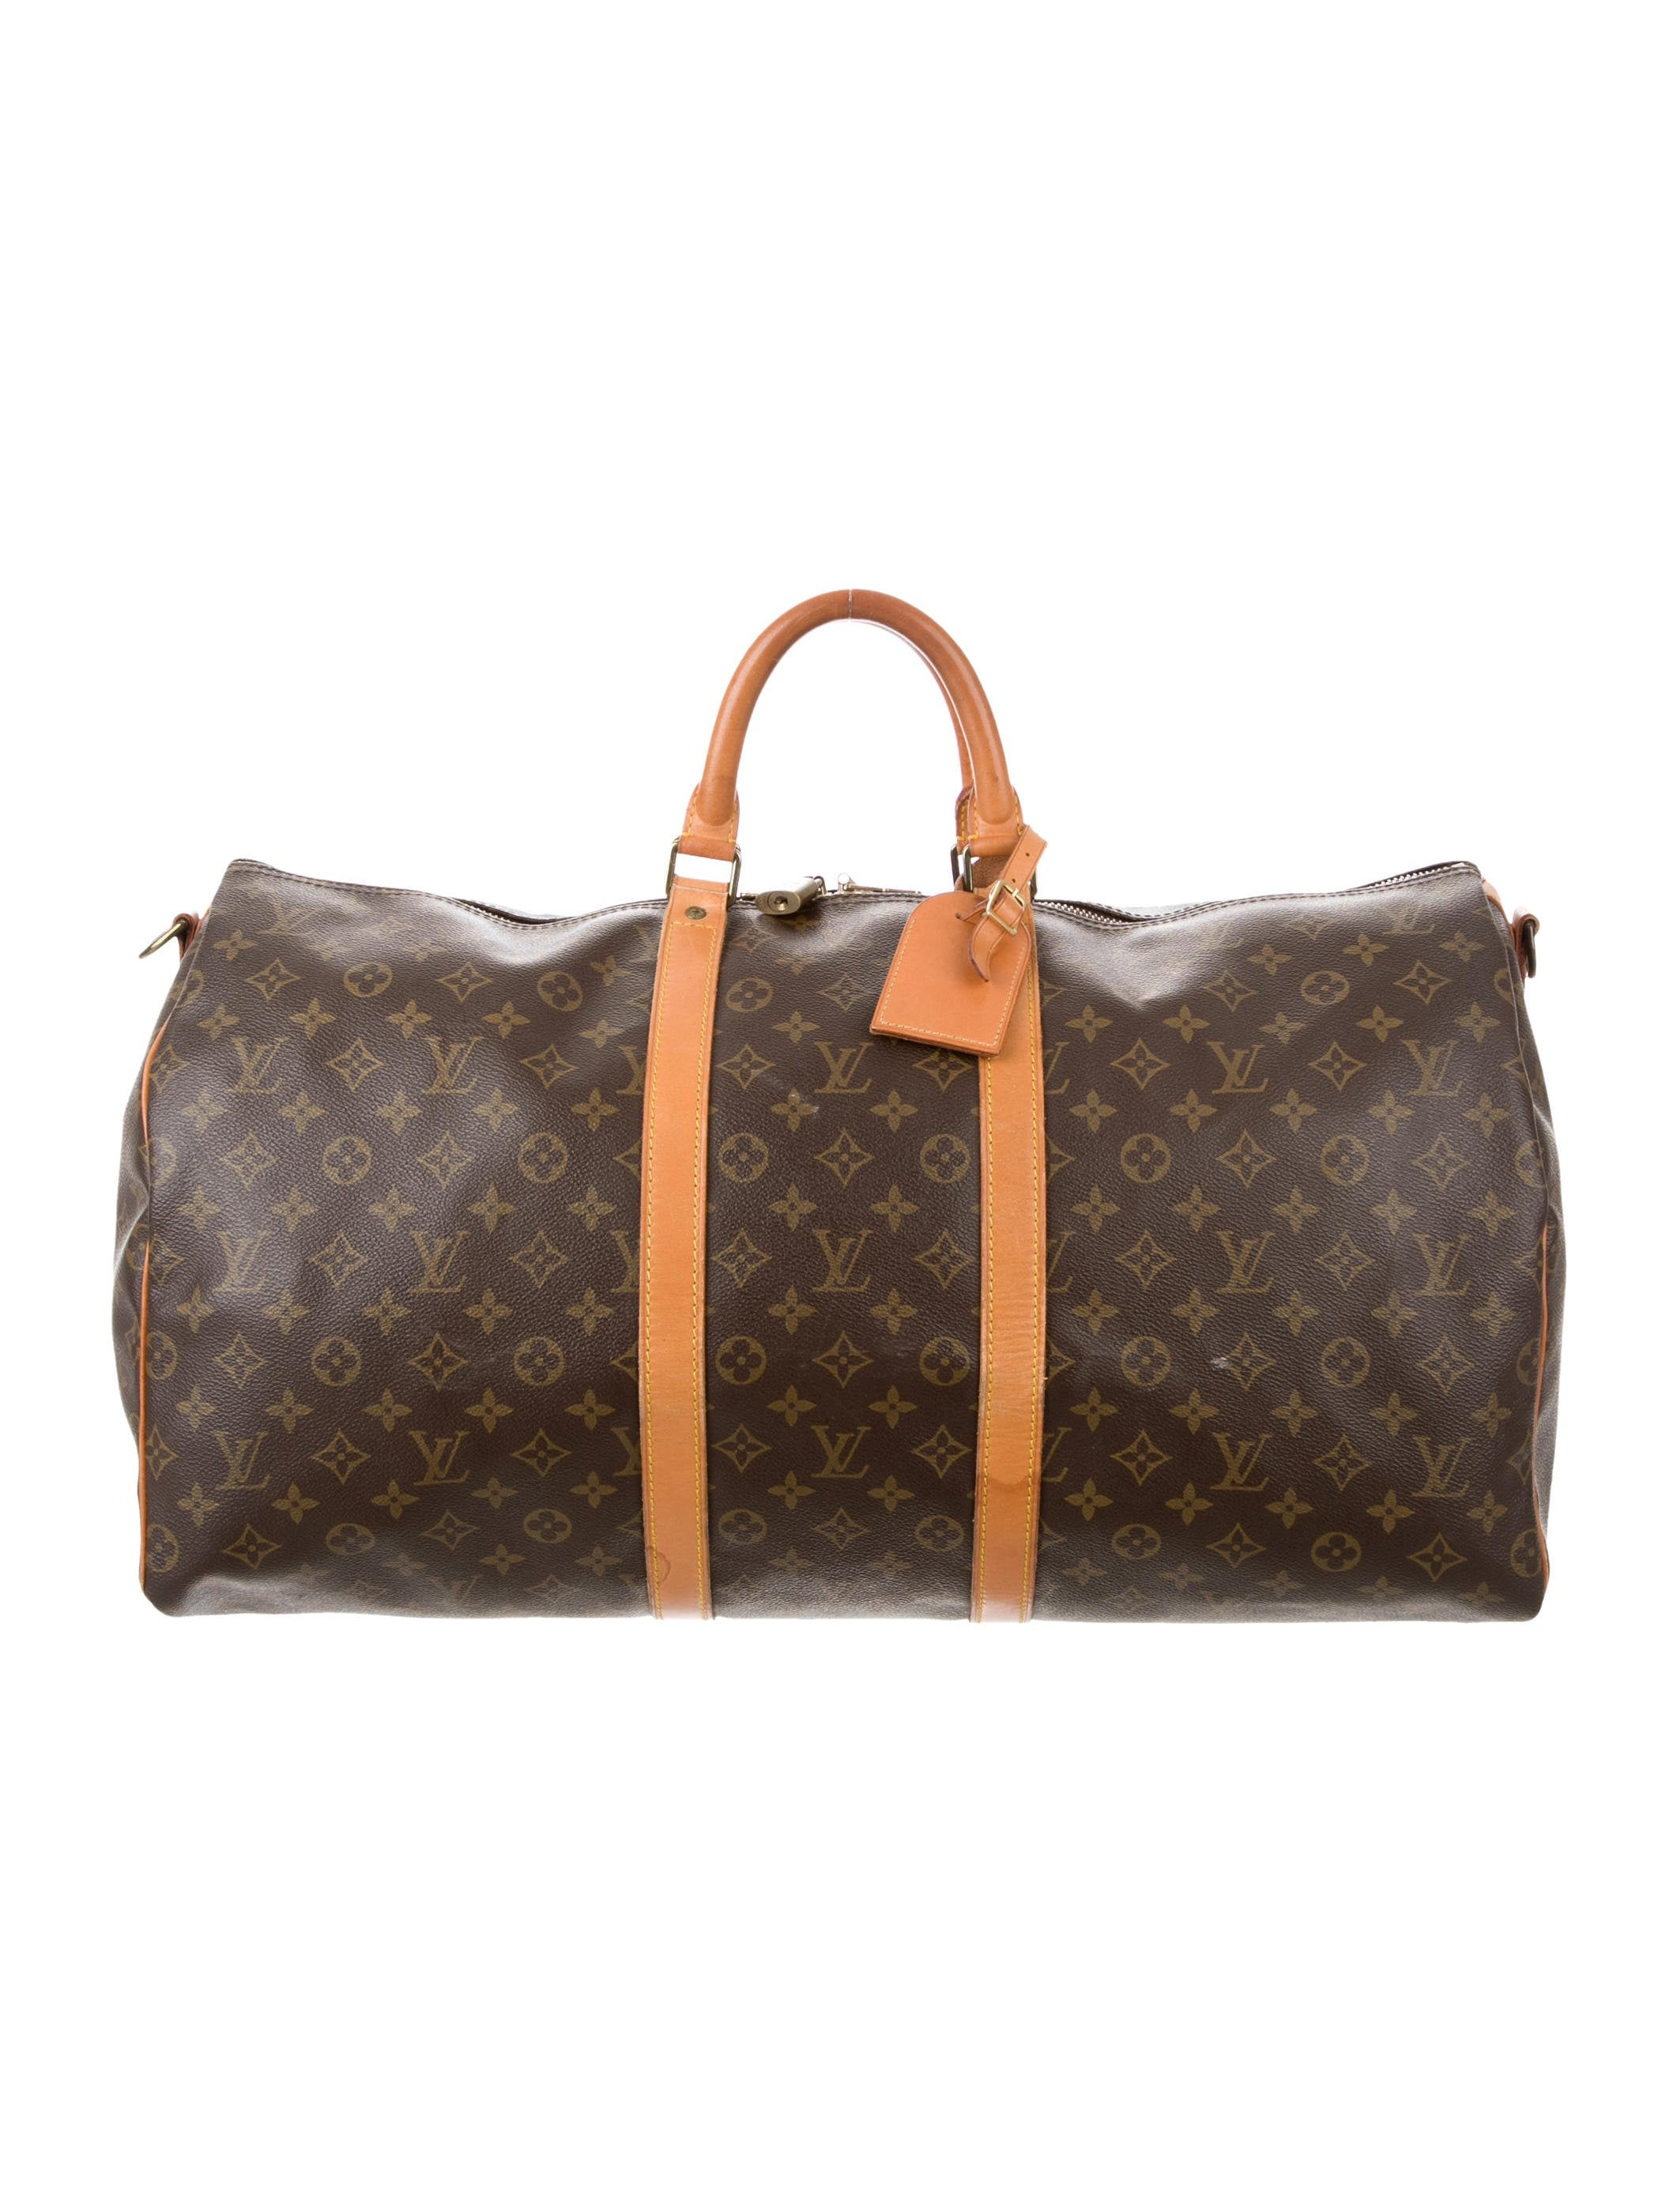 louis vuitton monogram keepall bandouli re 55 bags. Black Bedroom Furniture Sets. Home Design Ideas